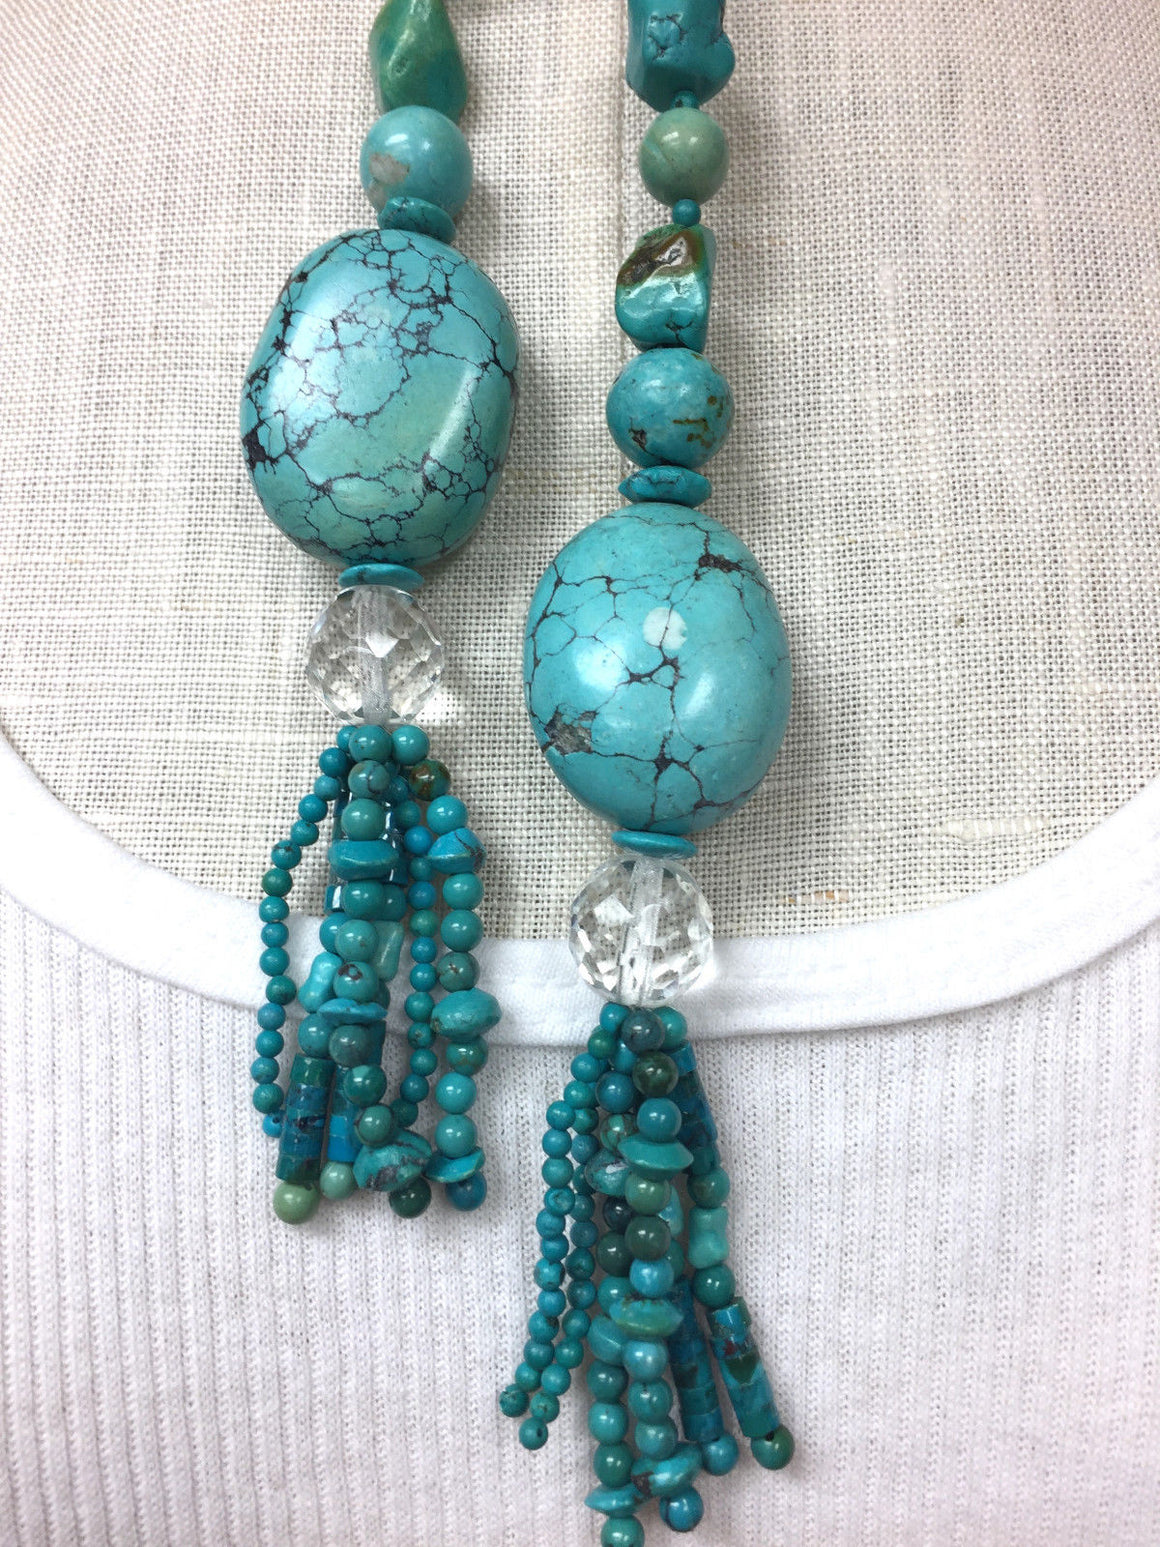 TURQUOISE Beads Nuggets & Roundels Tassel-End Lariat / Necklace